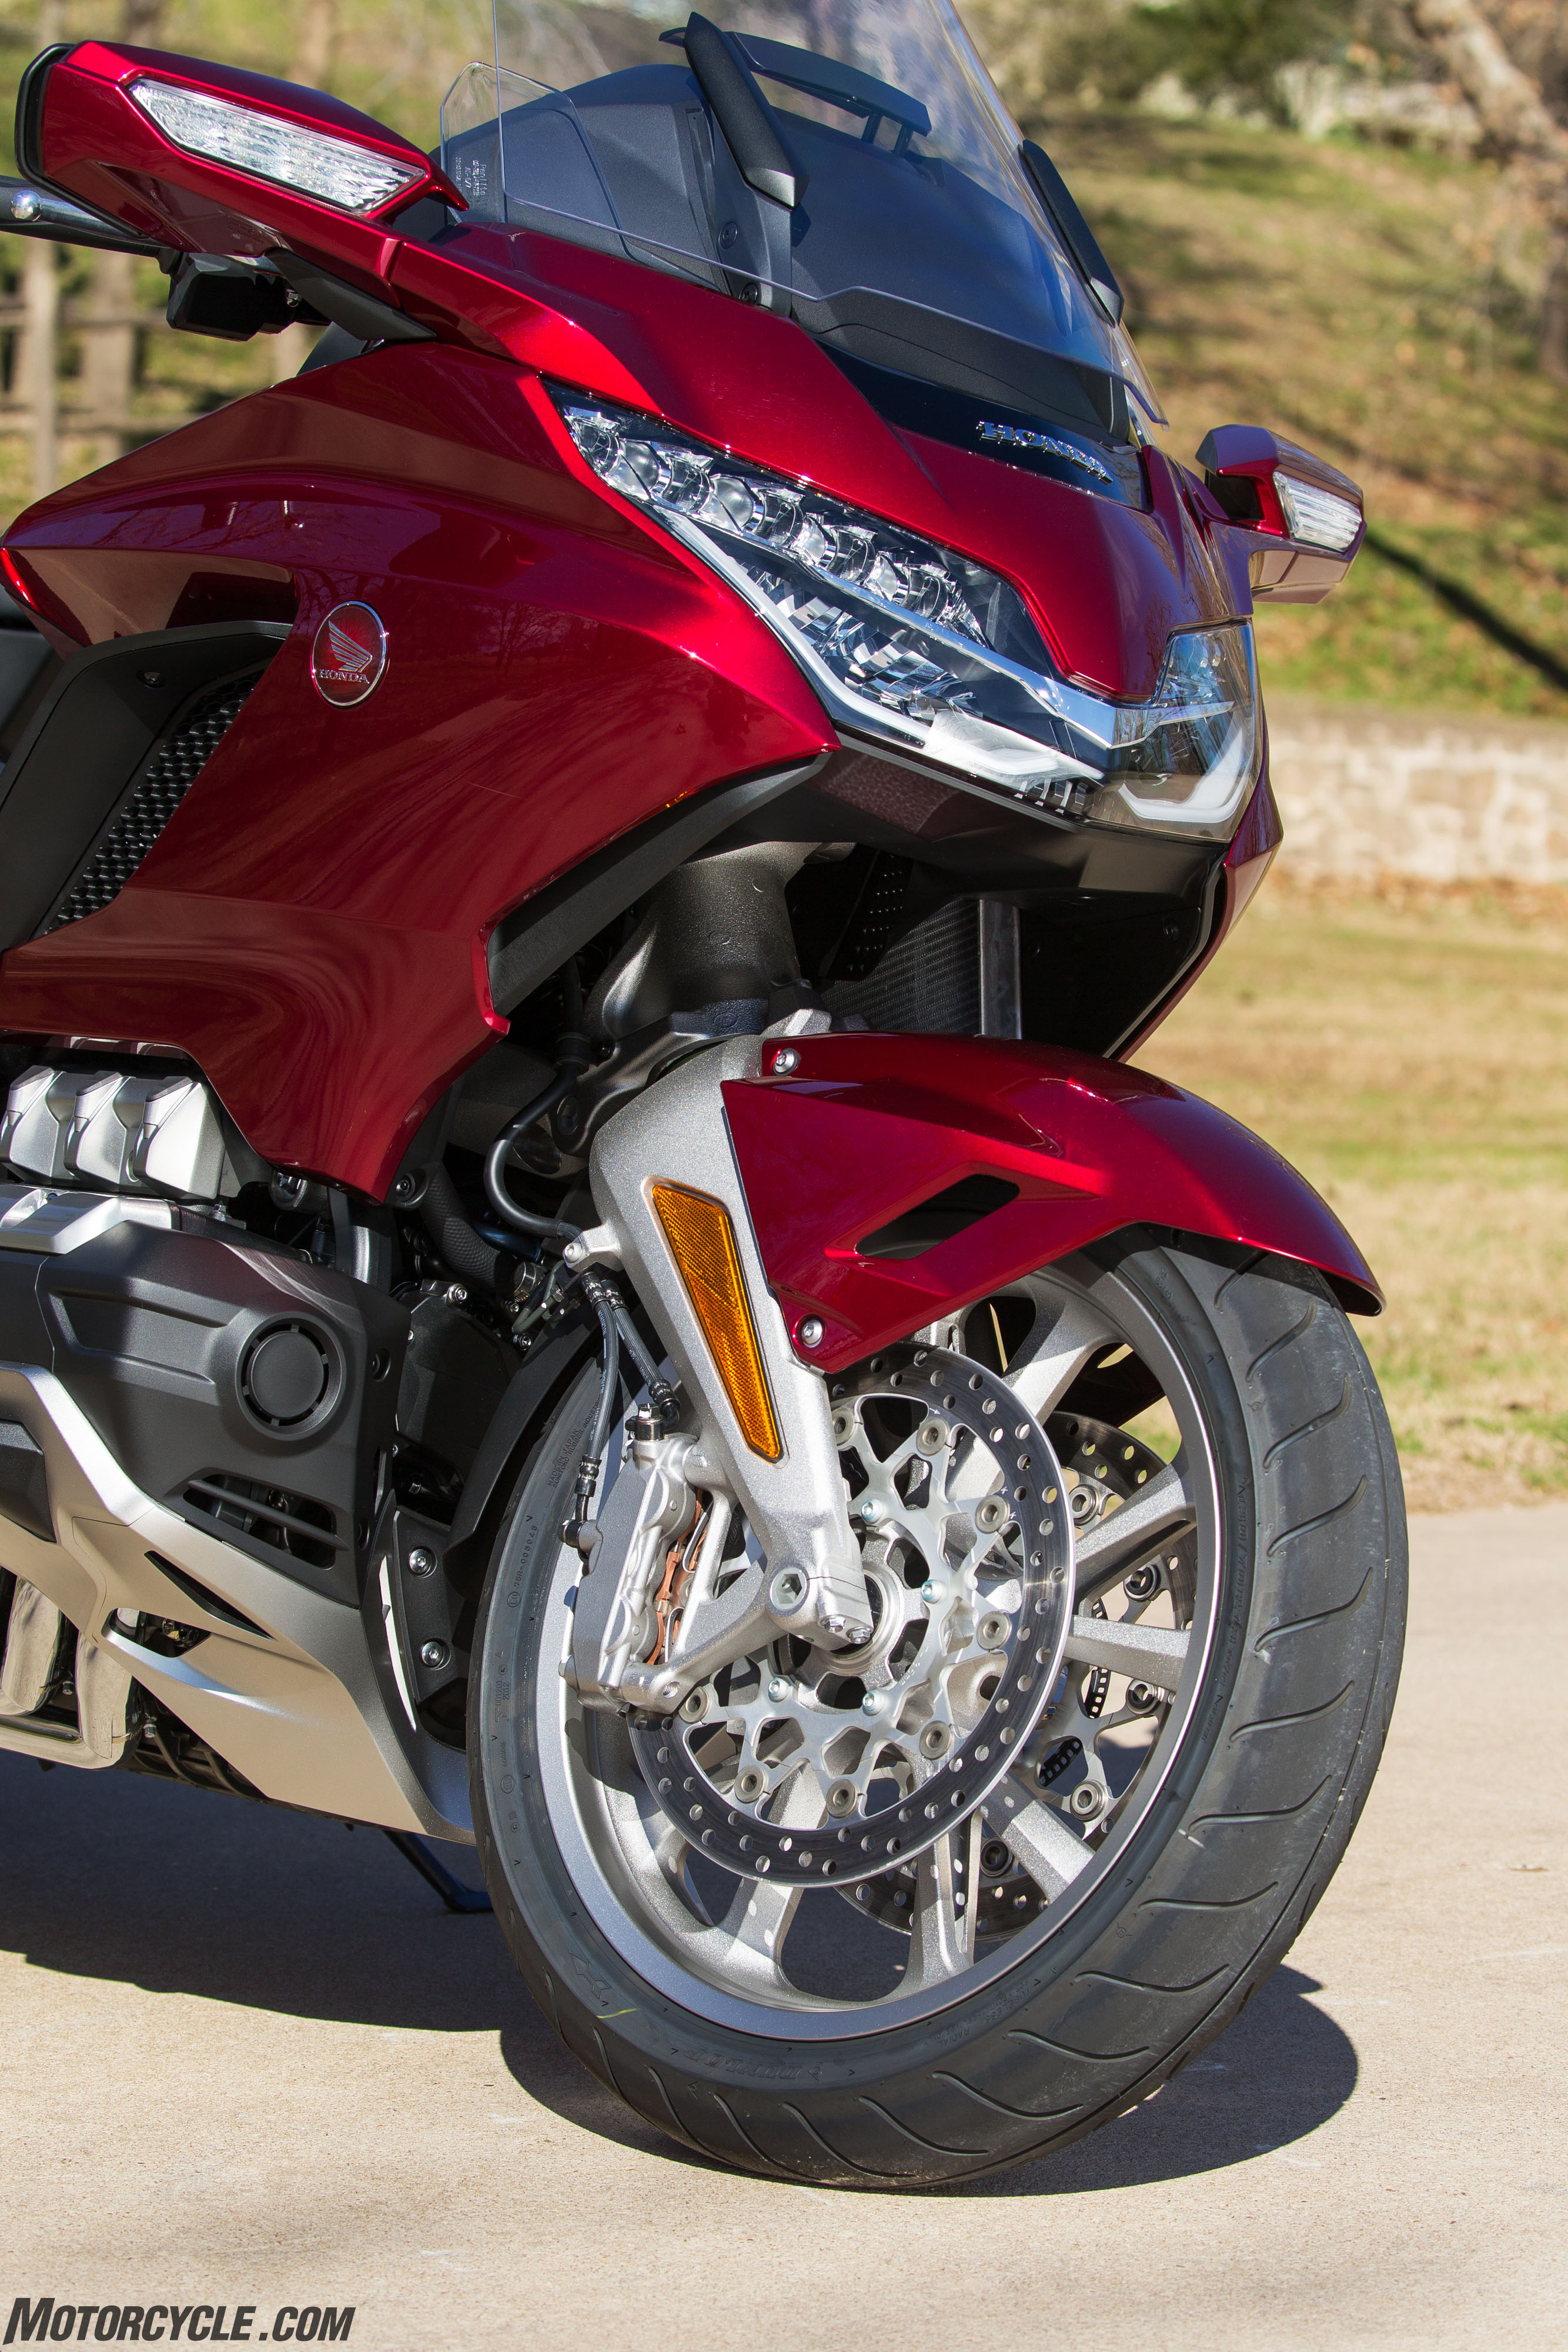 2018 Honda Gold Wing Tour Review - Motorcycle com